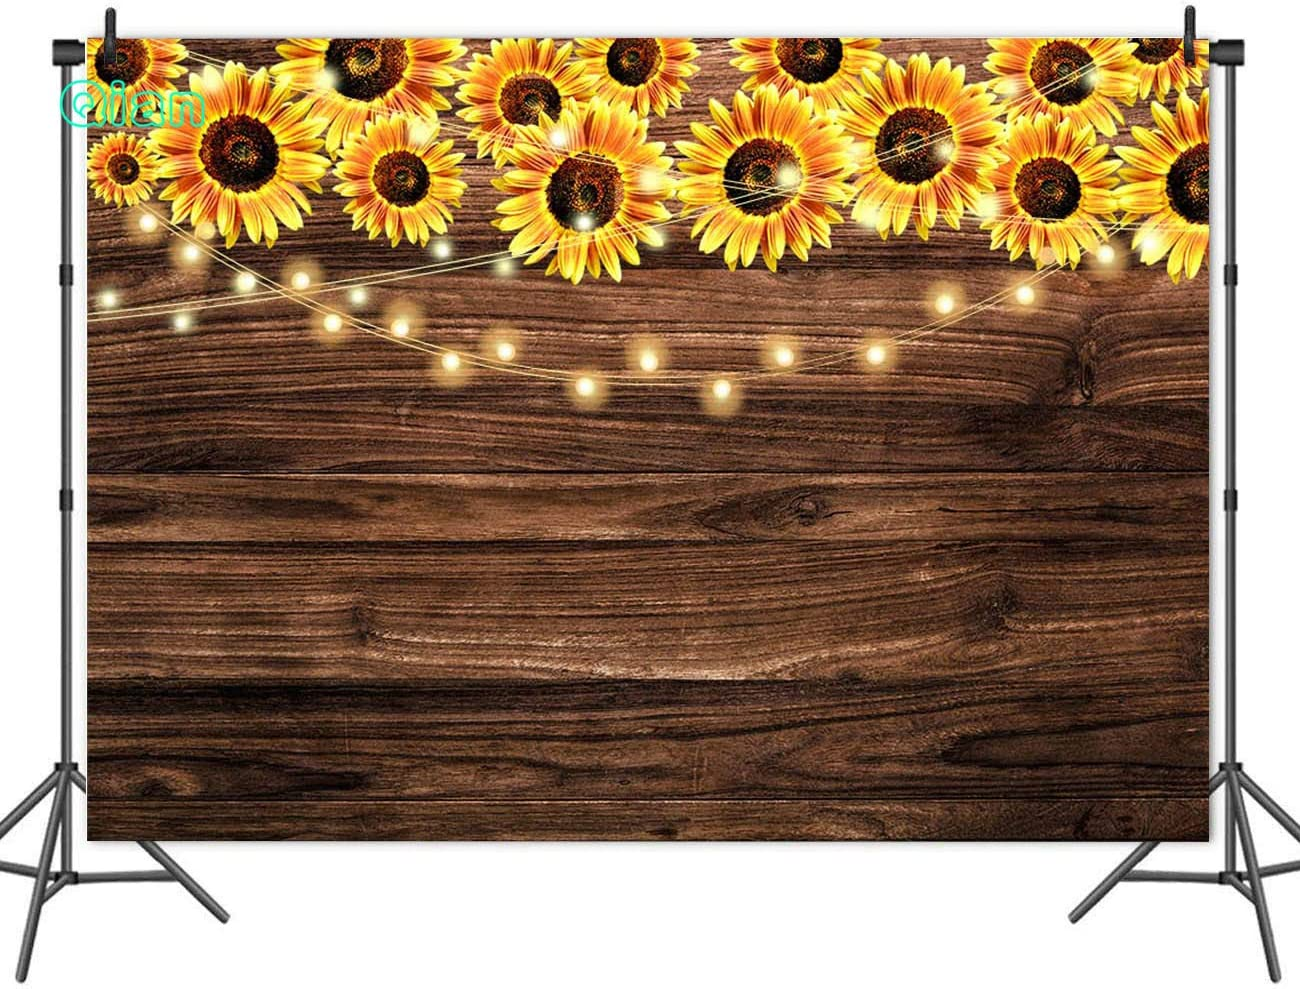 HUAYI 7x5ft Wood Floor with Flowers Interiors Decor Custom Newborns Baby Shower Photography Backdrop Background for Photo Studio Props lw-1081